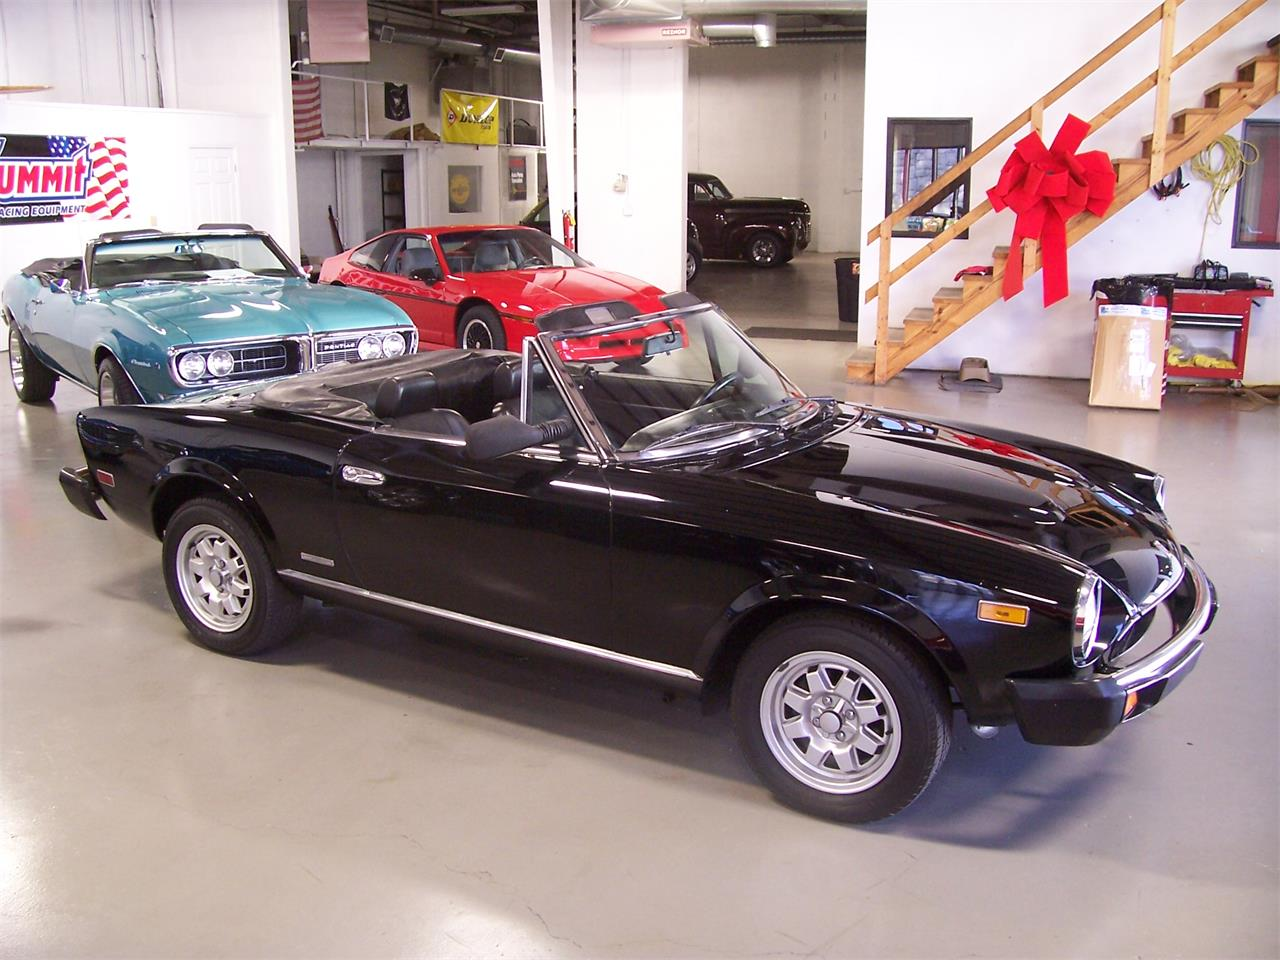 Large Picture of 1985 Fiat Spider located in Georgia - $14,900.00 - MH5P